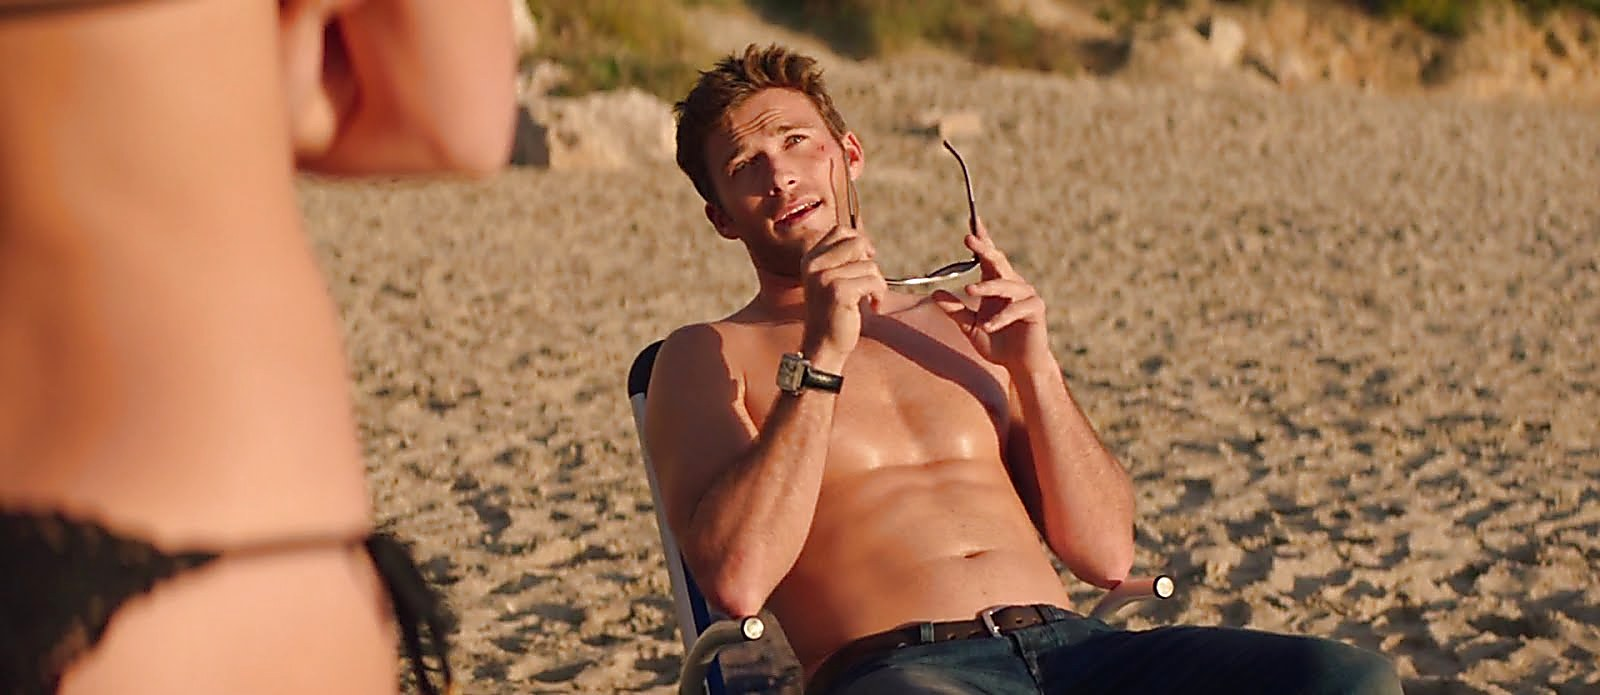 Scott Eastwood sexy shirtless scene October 8, 2017, 12pm